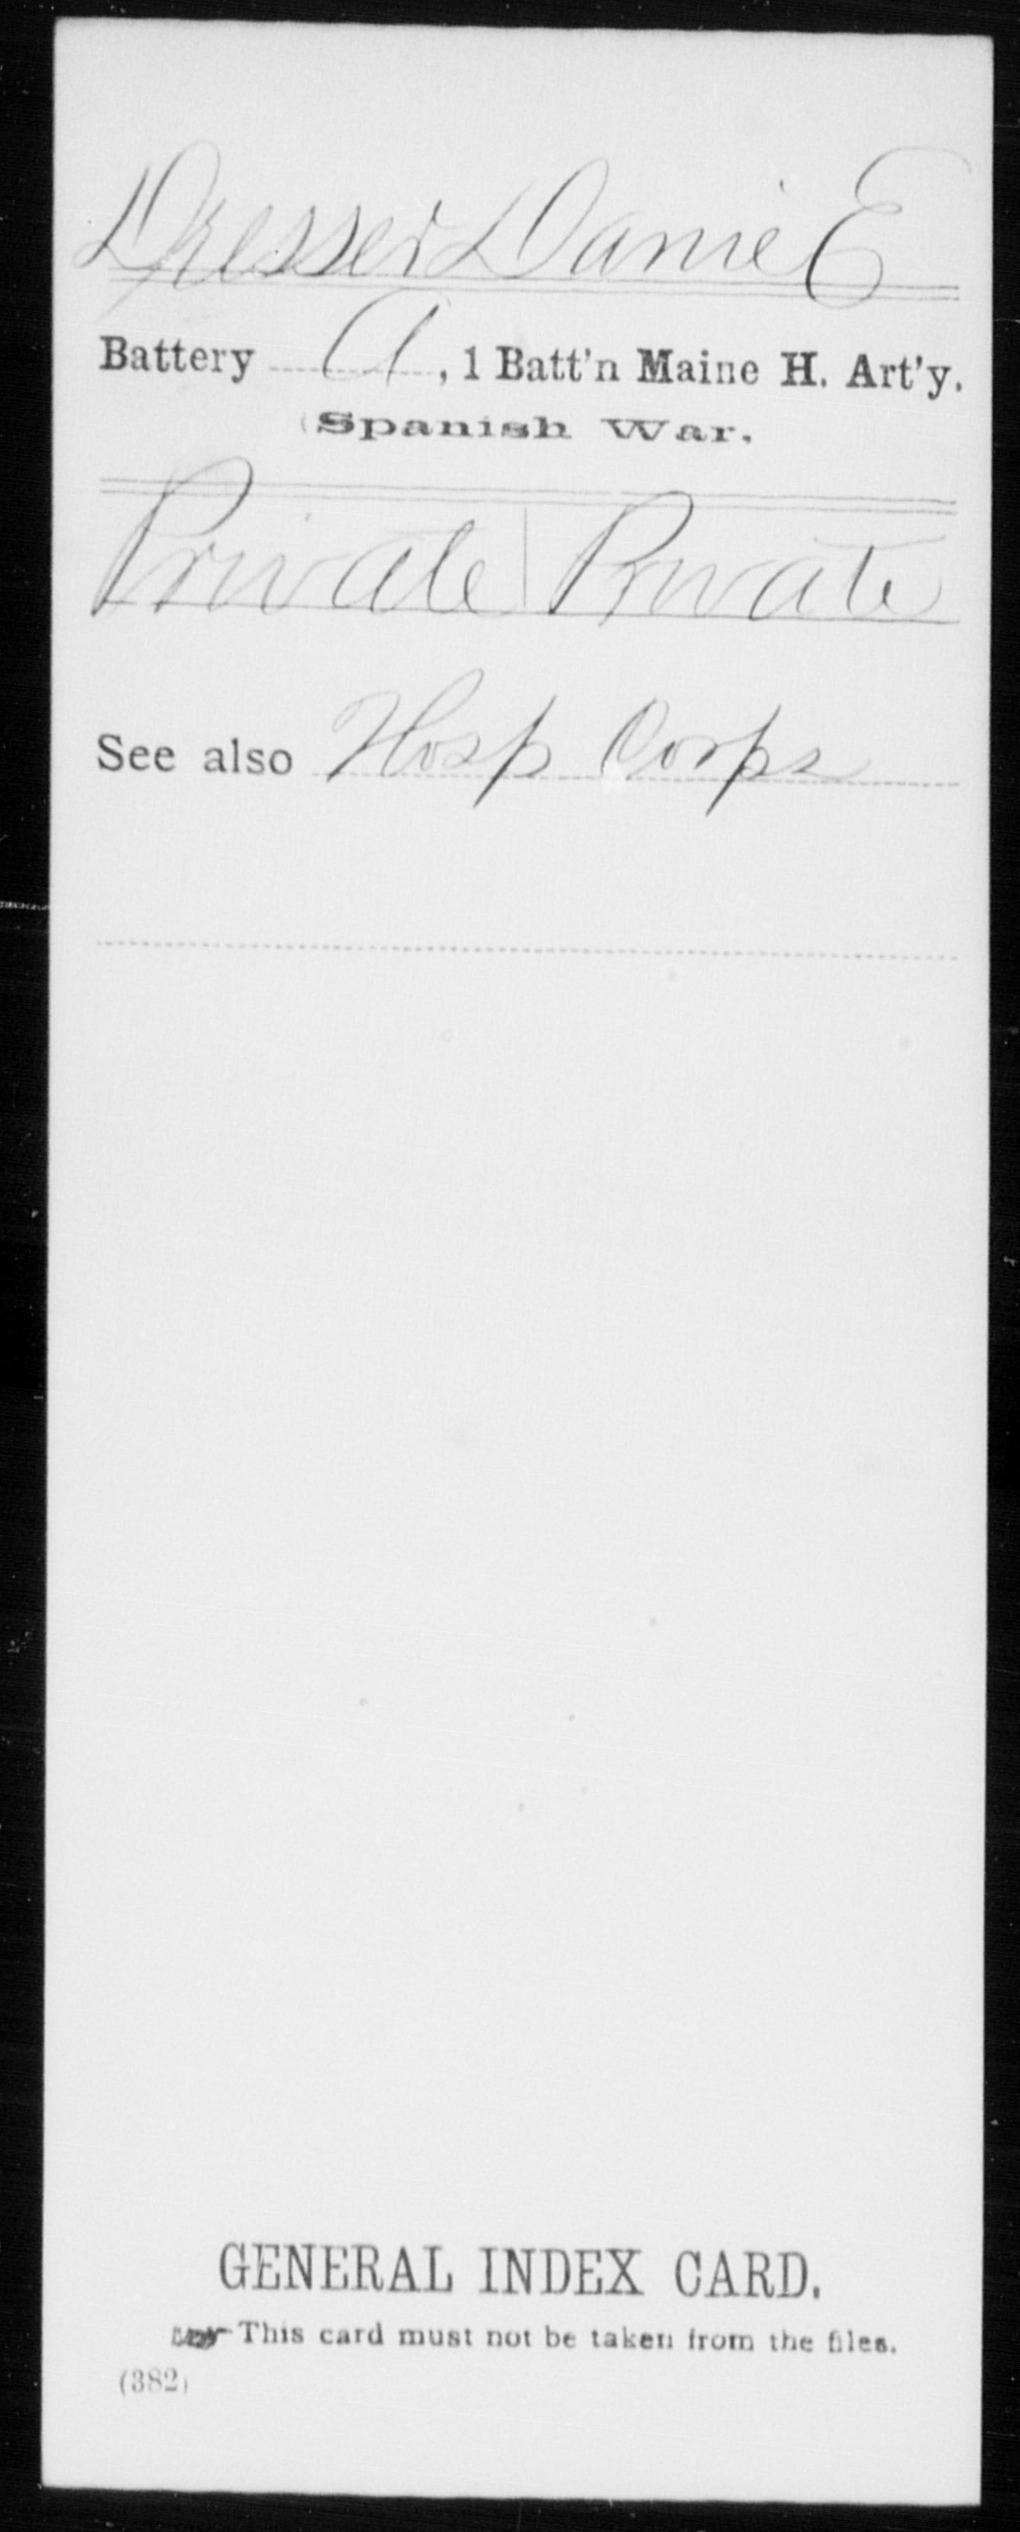 Dresser, Danie E - State: Maine - Regiment: Battery A, 1 Battalion Maine Heavy Artillery, Company [Blank]